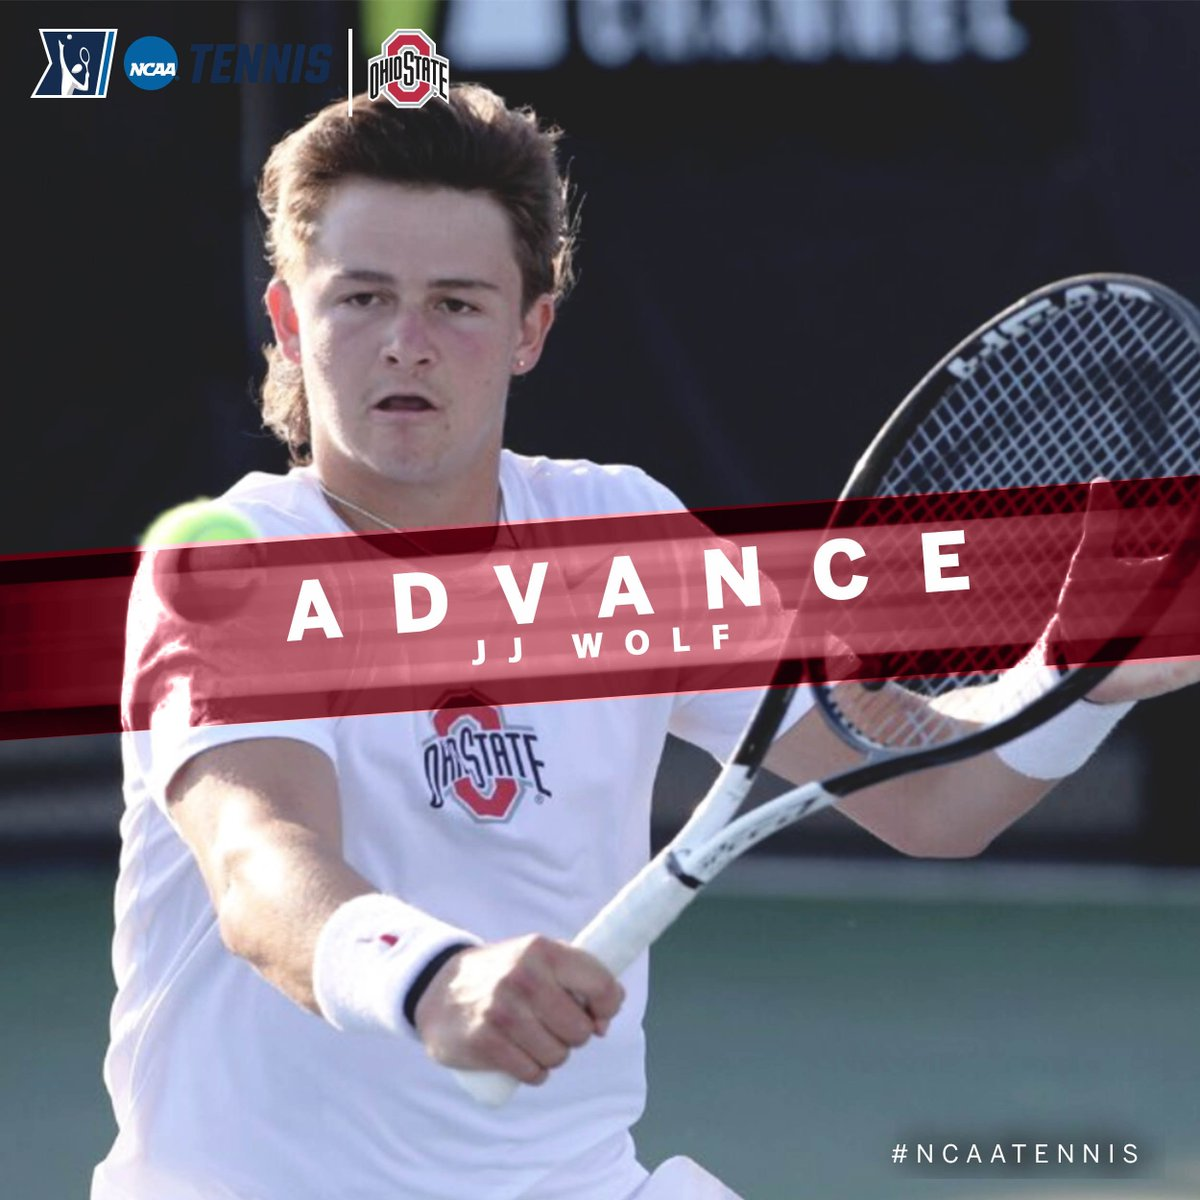 #Buckeyes teammate JJ Wolf, the No. 2 seed, topped Adria Barrera of Miami, Fla., 6-2, 6-3 in the @NCAATennis First Roud of the Singles Championship on Monday in Orlando. #B1GMTennis